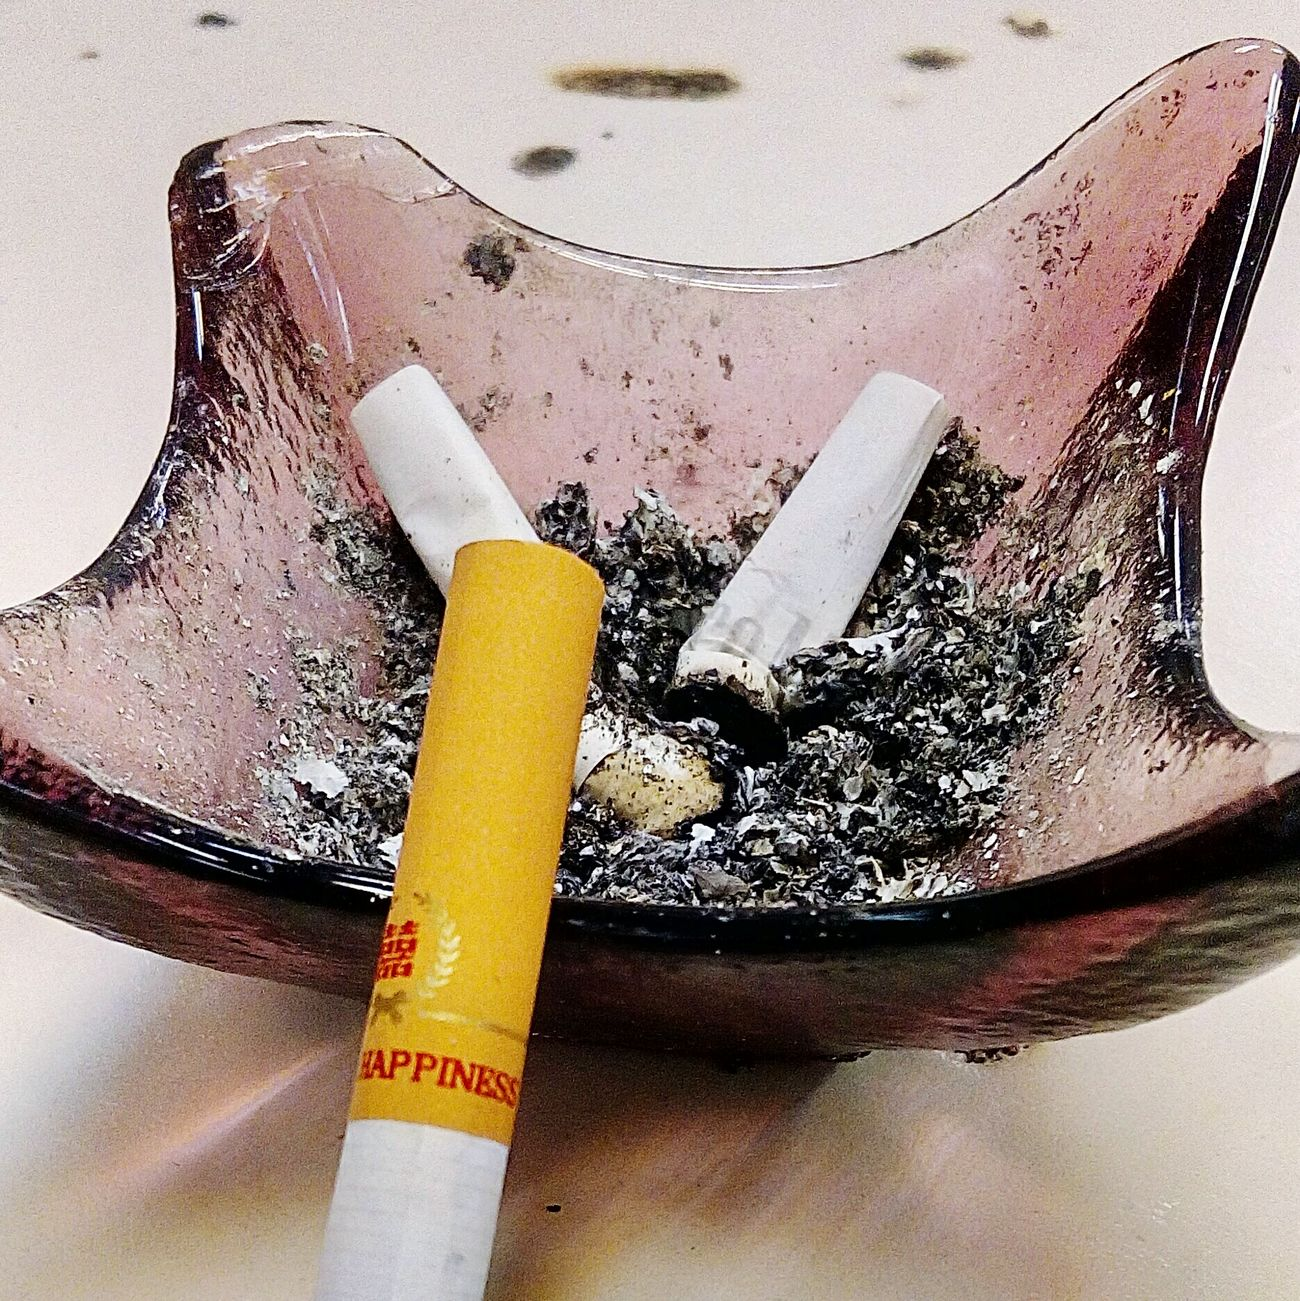 Happiness Cigarette  Smoke Ashtray  Ashes Drink